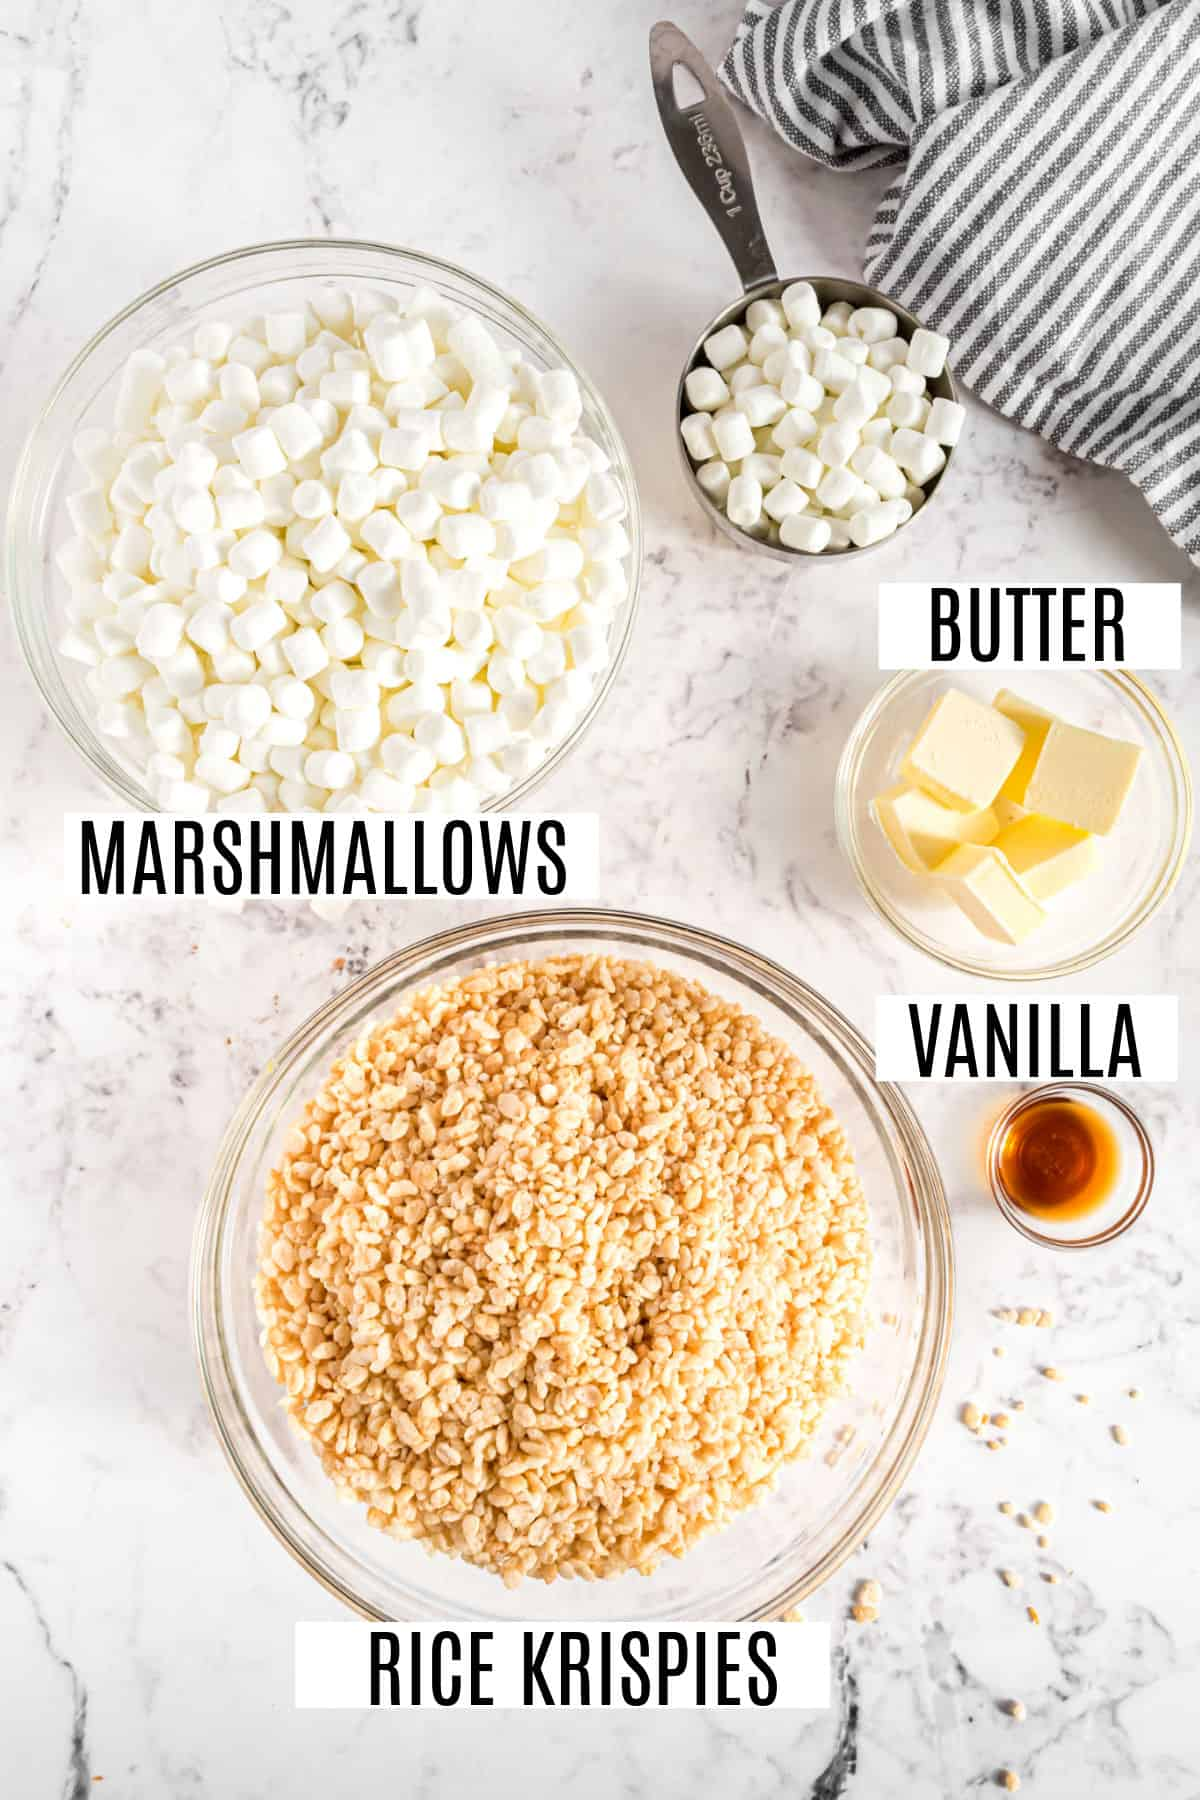 Only four ingredients needed for original rice krispie treats recipe.